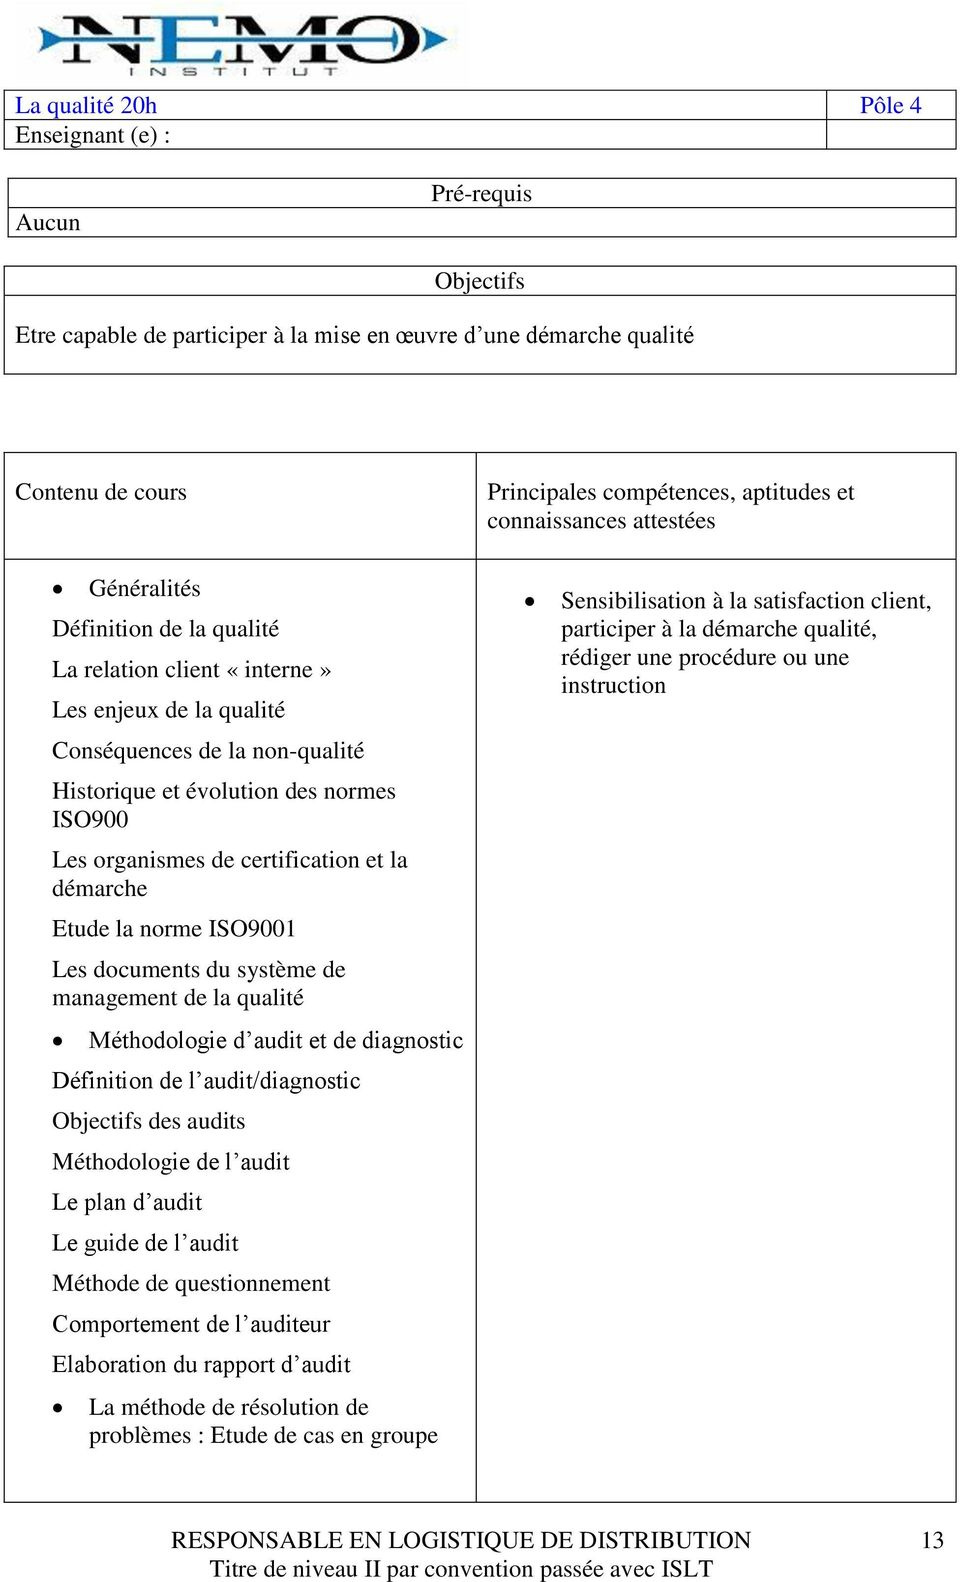 d audit et de diagnostic Définition de l audit/diagnostic des audits Méthodologie de l audit Le plan d audit Le guide de l audit Méthode de questionnement Comportement de l auditeur Elaboration du